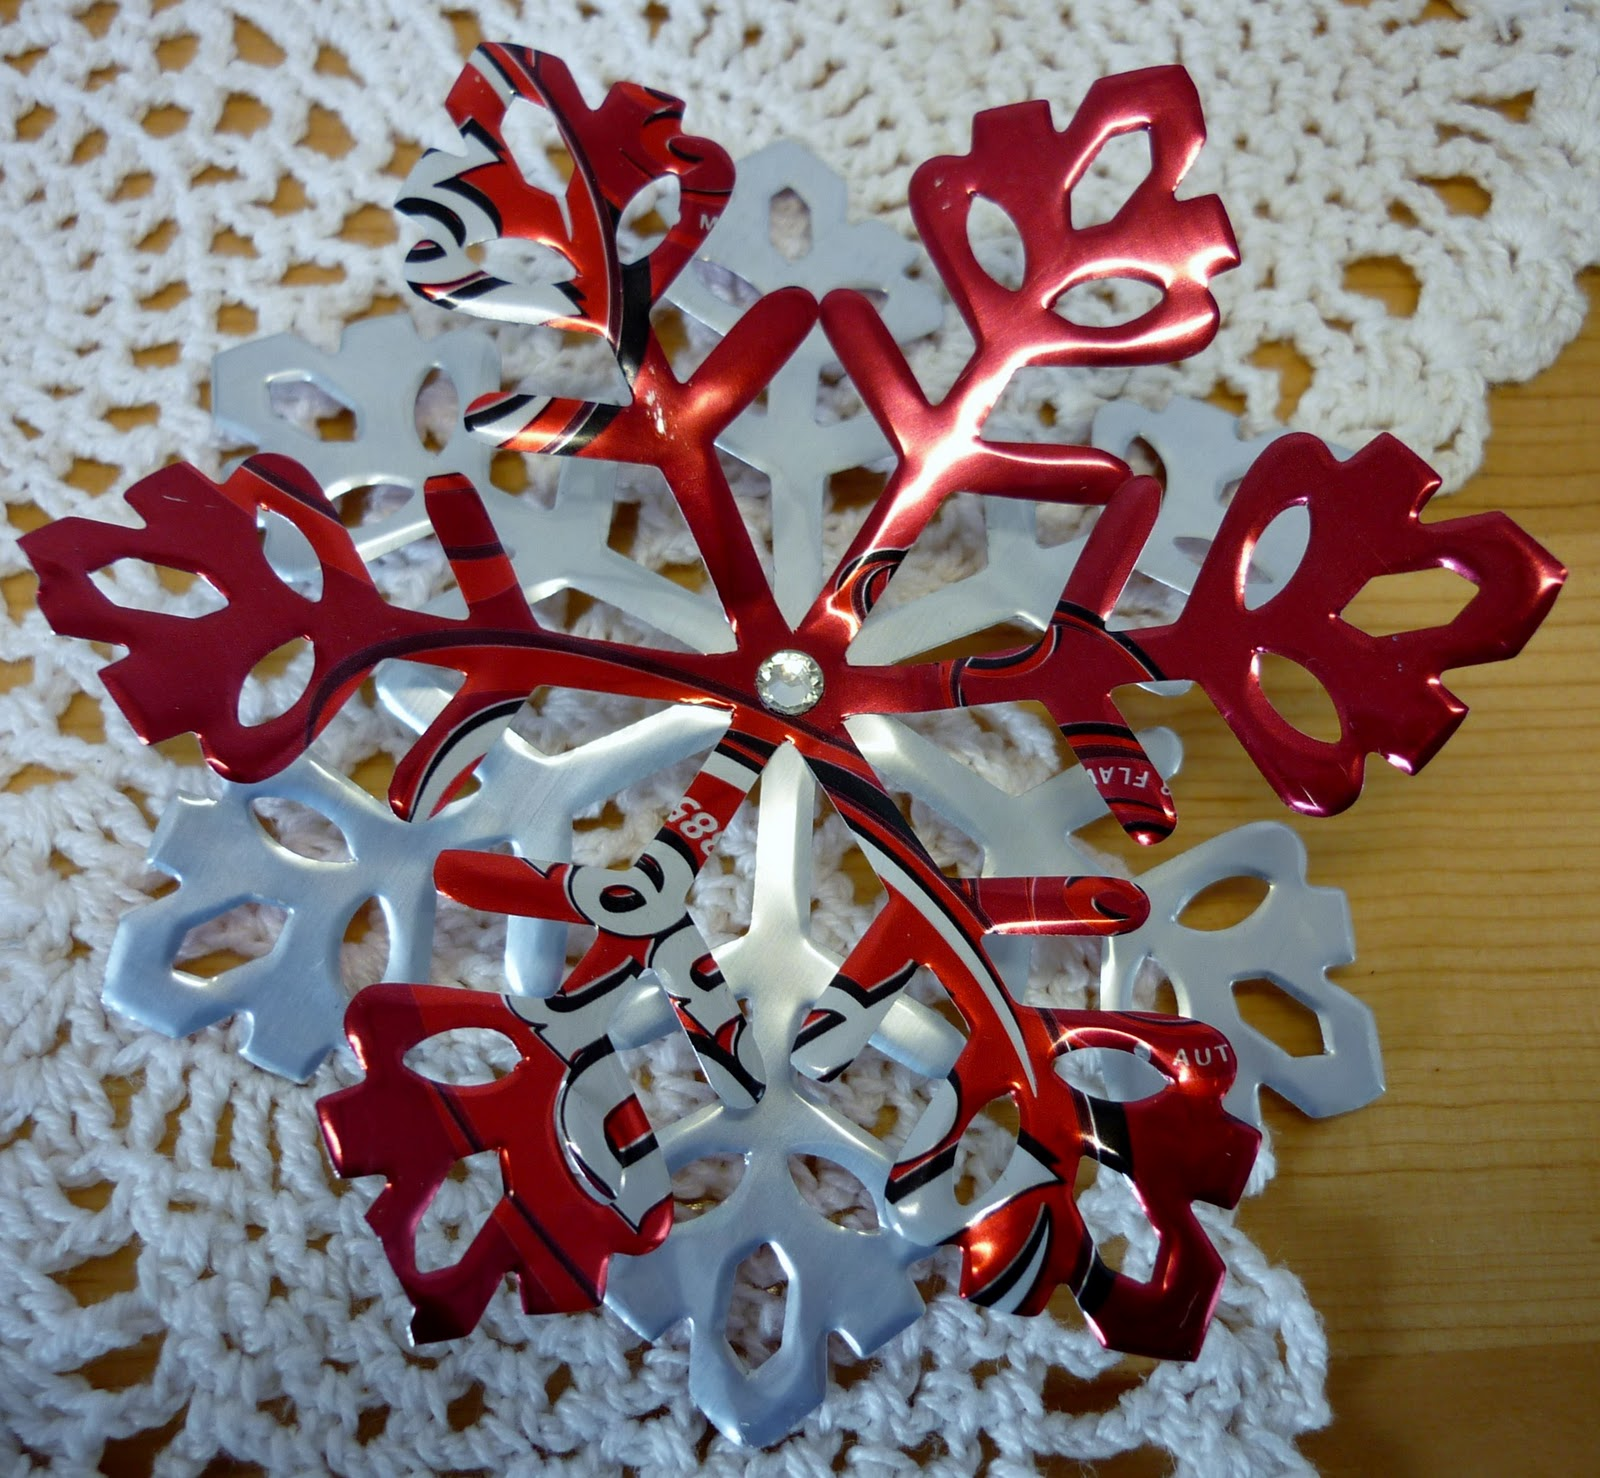 Soda In Christmas Tree Water: Papercrafts Love Affair: Soda Can Ornaments